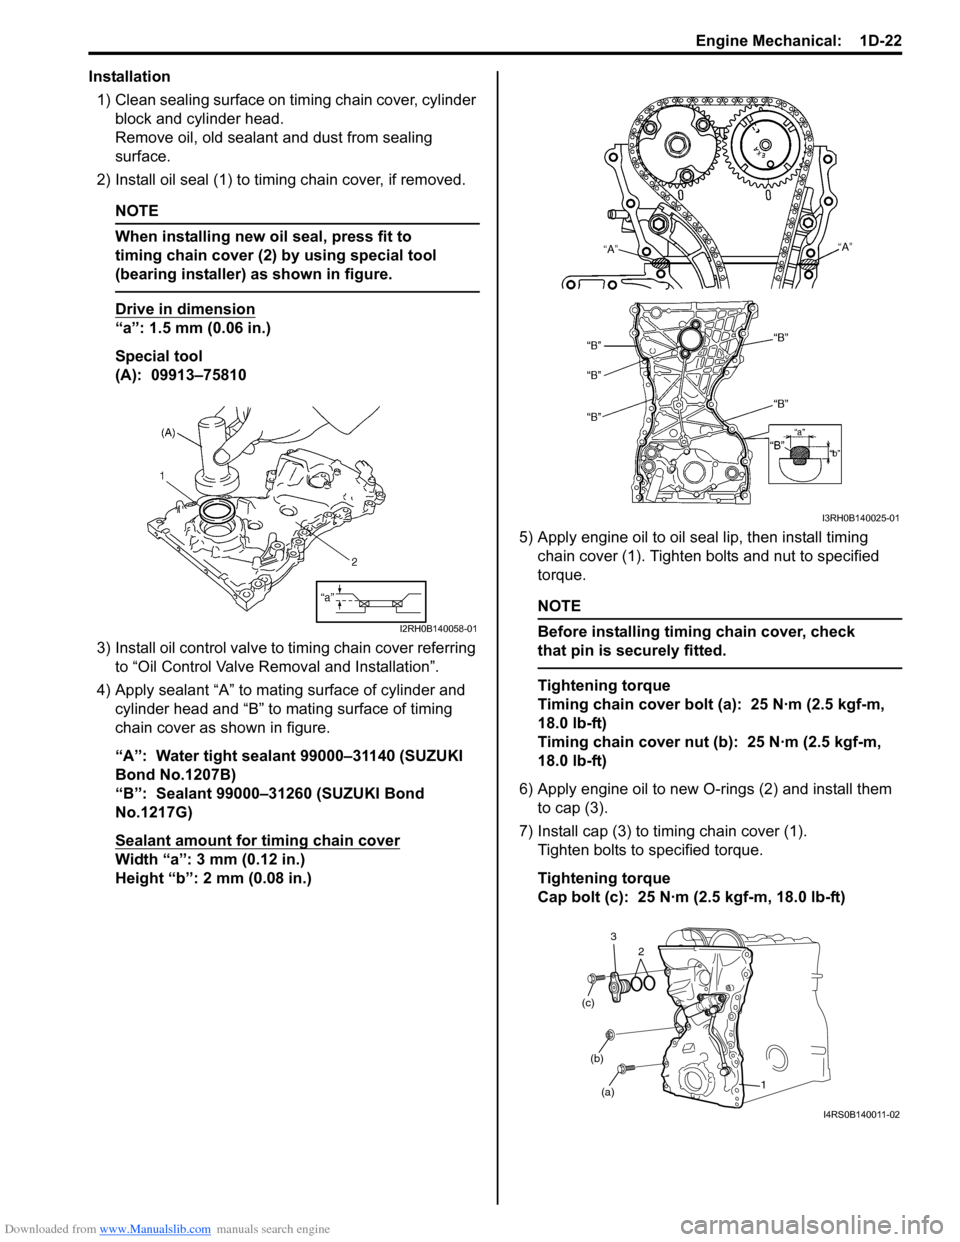 SUZUKI SWIFT 2008 2.G Service Workshop Manual Downloaded from www.Manualslib.com manuals search engine Engine Mechanical:  1D-22 Installation1) Clean sealing surface on timing chain cover, cylinder  block and cylinder head. Remove oil, old sealan